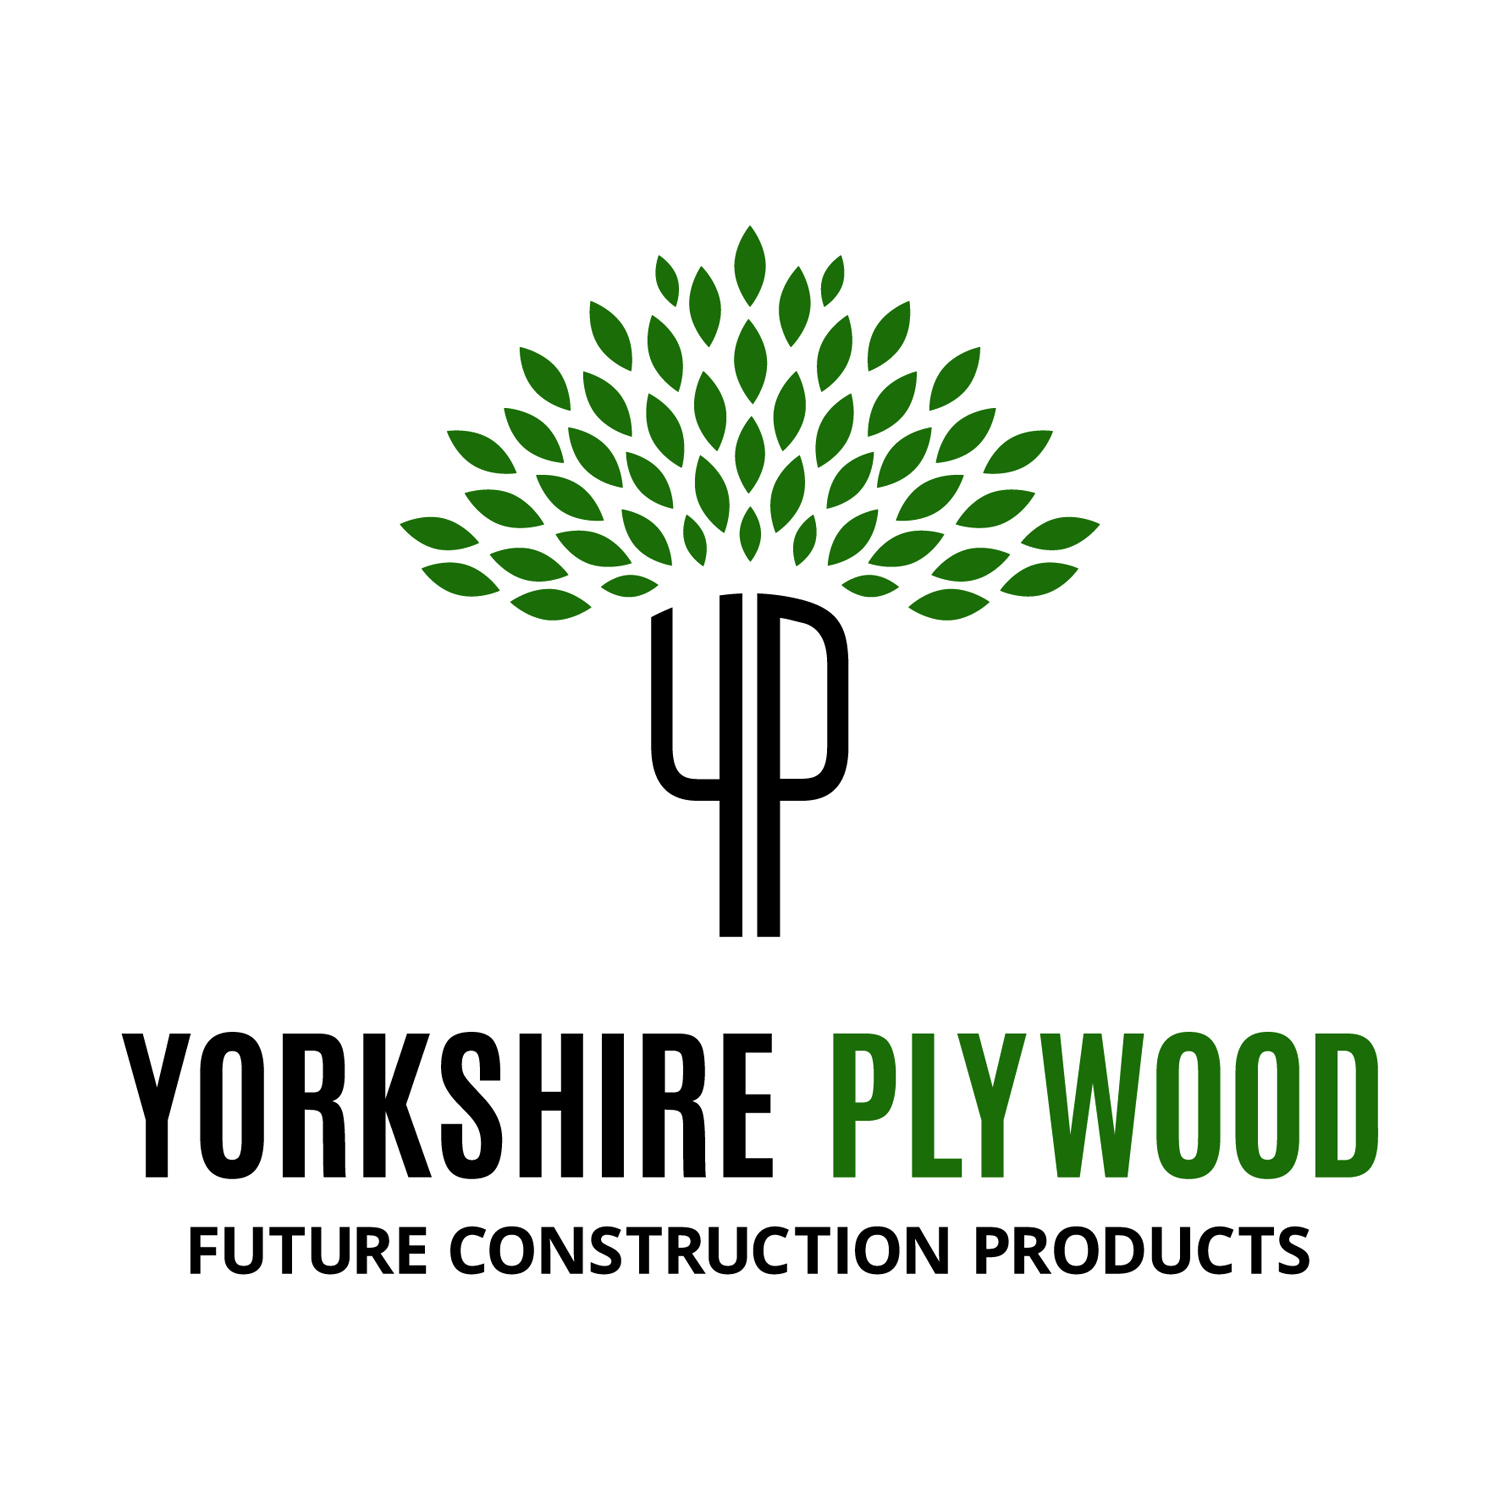 Yorkshire Plywood